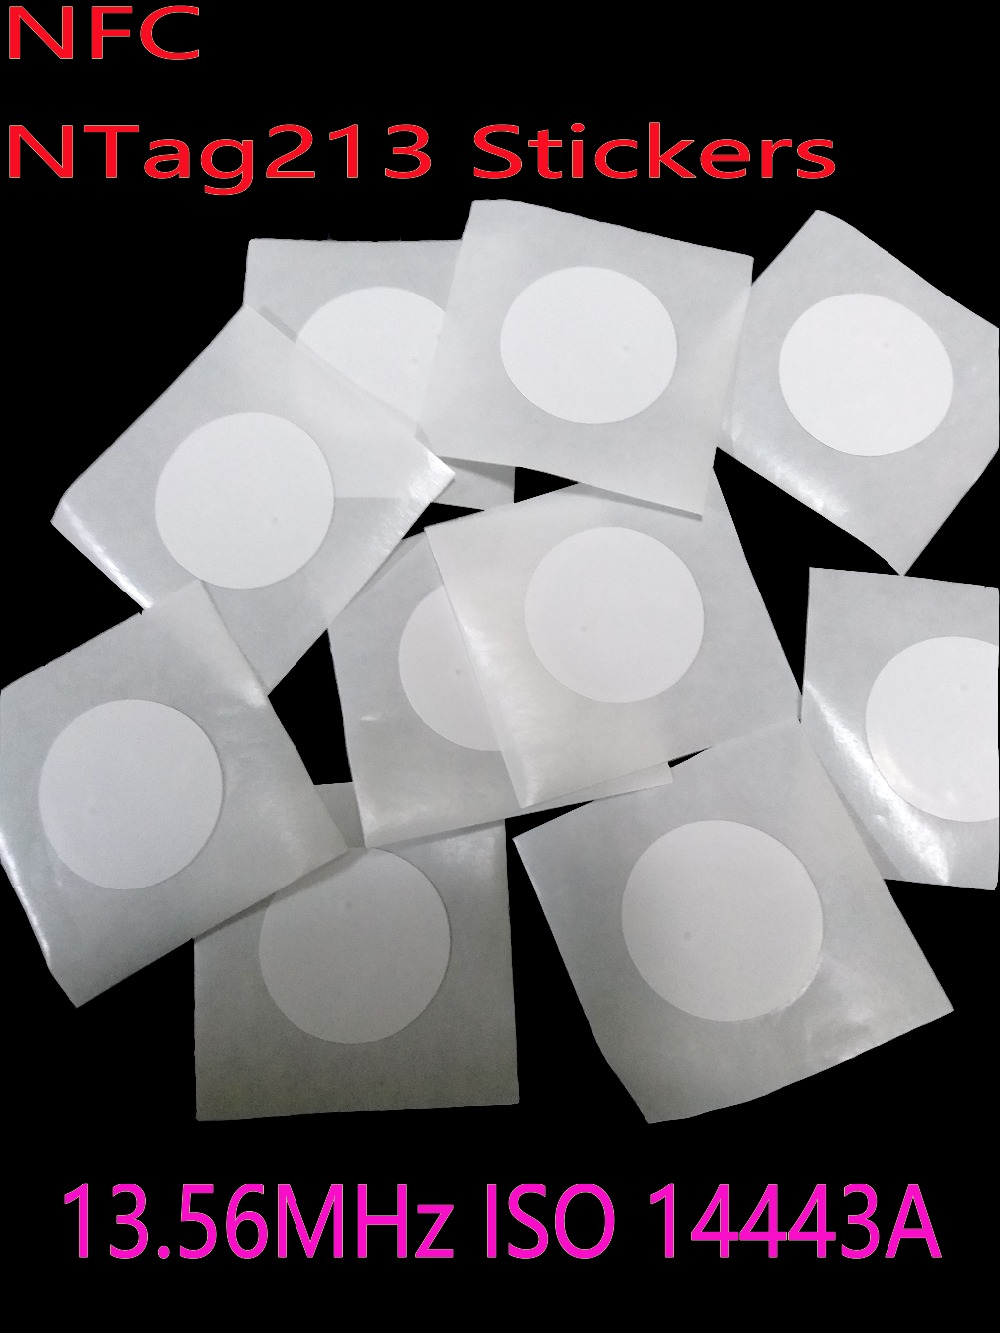 100pcs/Lot NFC Tag  Ntag213 ISO14443A 13.56MHz NFC Sticker Ntag 213 RFID NFC tags Stickers Adhesive Labels For All NFC Phone 4pcs lot nfc tag sticker 13 56mhz iso14443a ntag 213 nfc sticker universal lable rfid tag for all nfc enabled phones dia 30mm